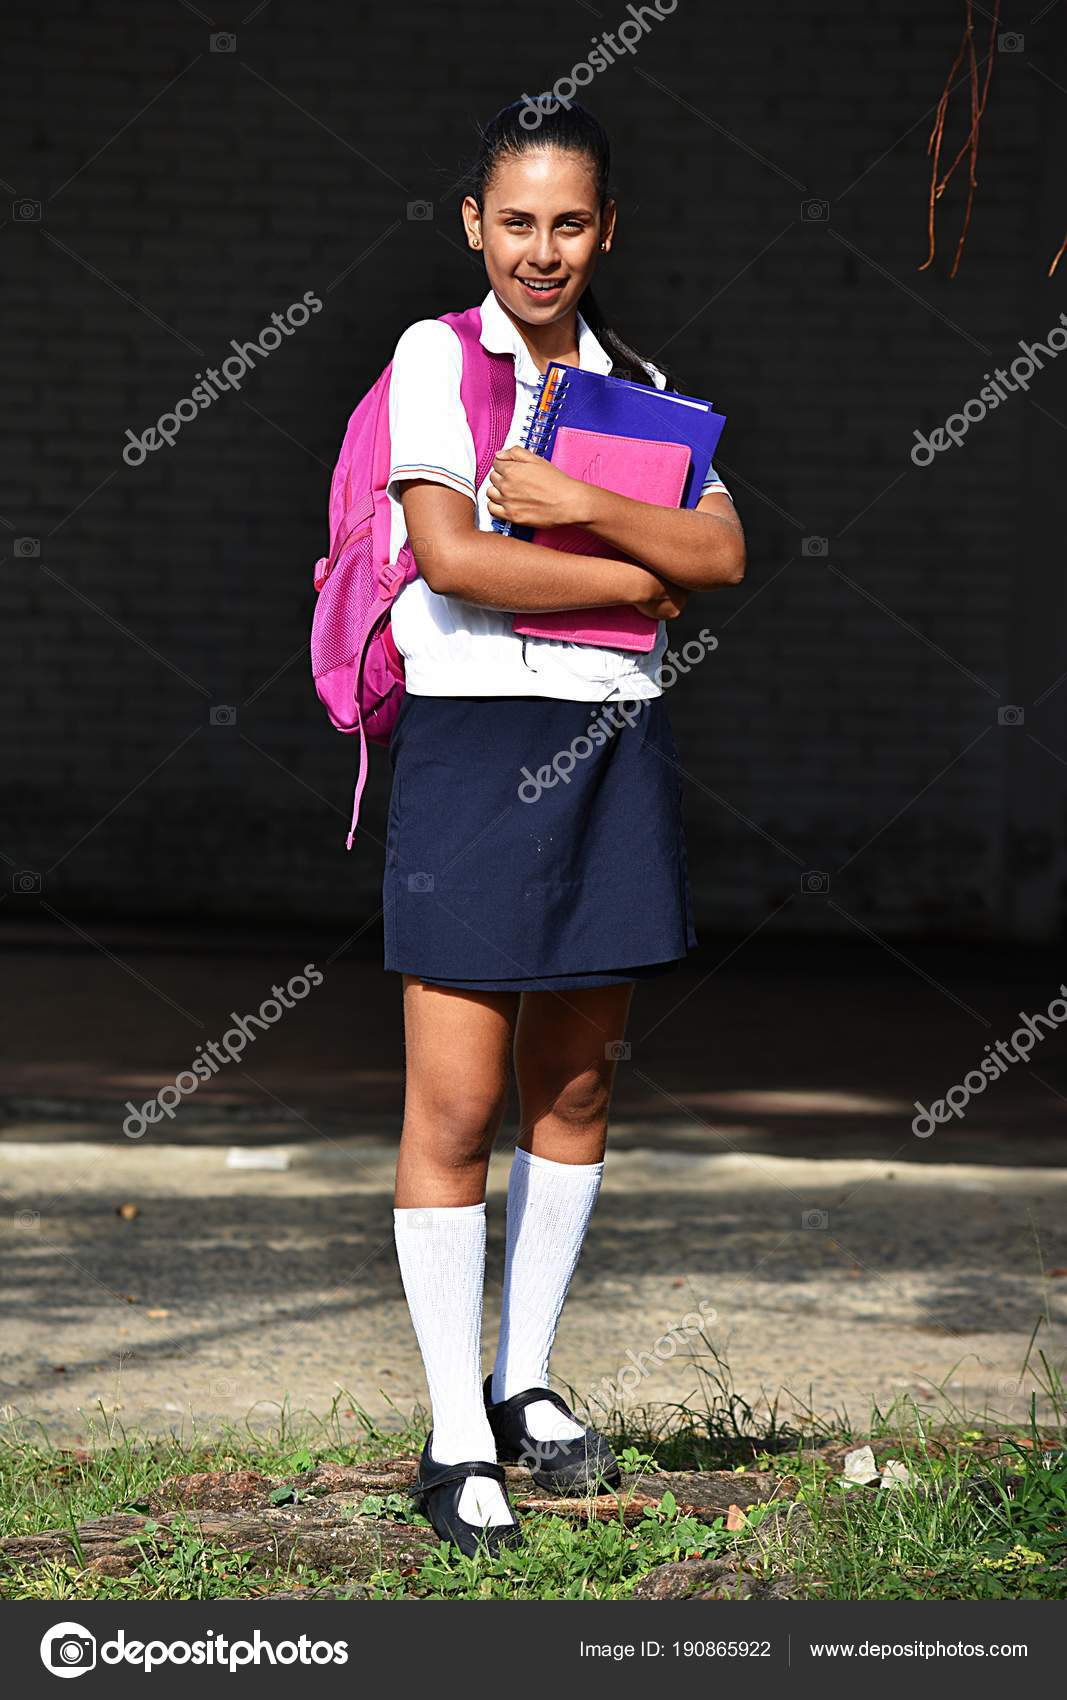 For that Pics of young girls in school uniform